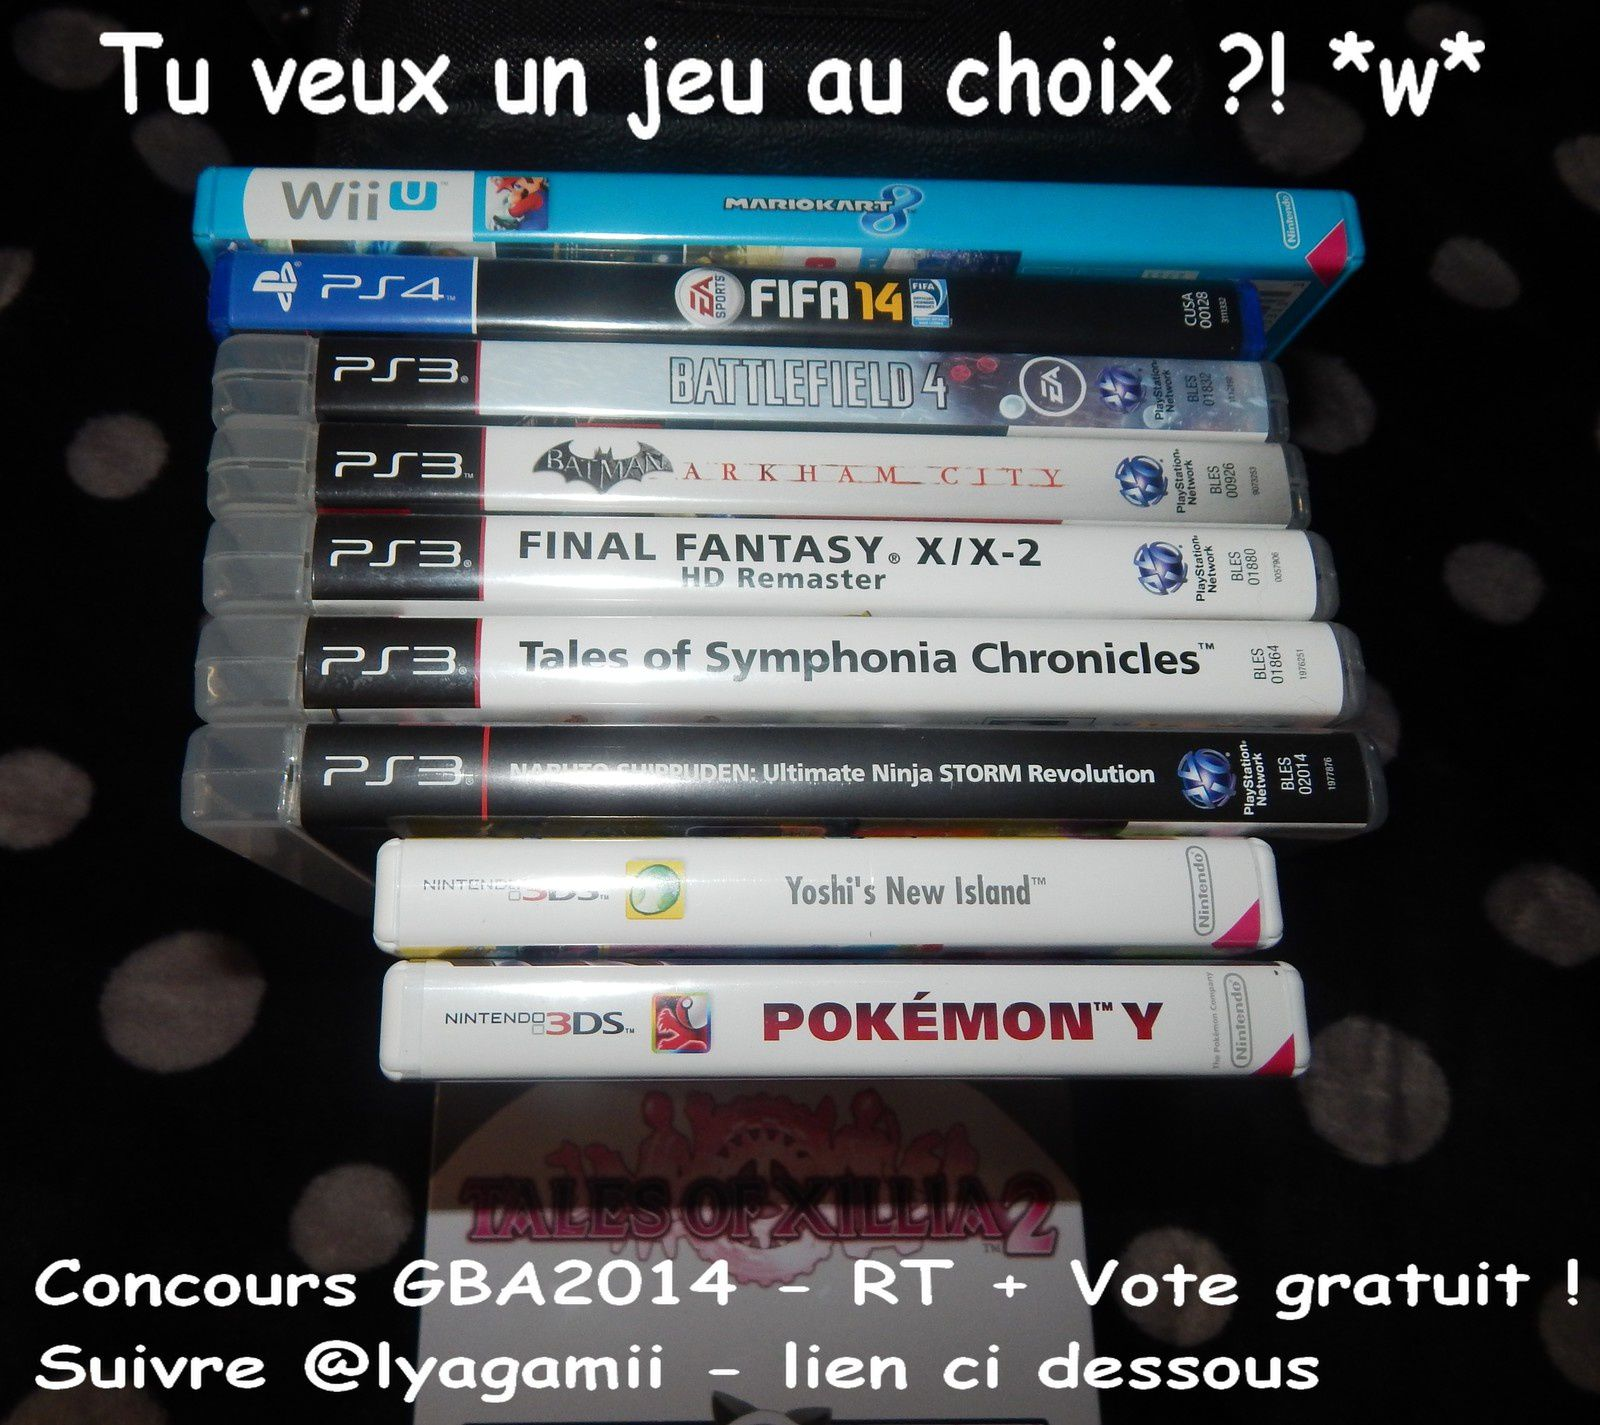 Jeux a gagner ! Concours #GBA2014 otakuplayer ! Vote PLEASE RT